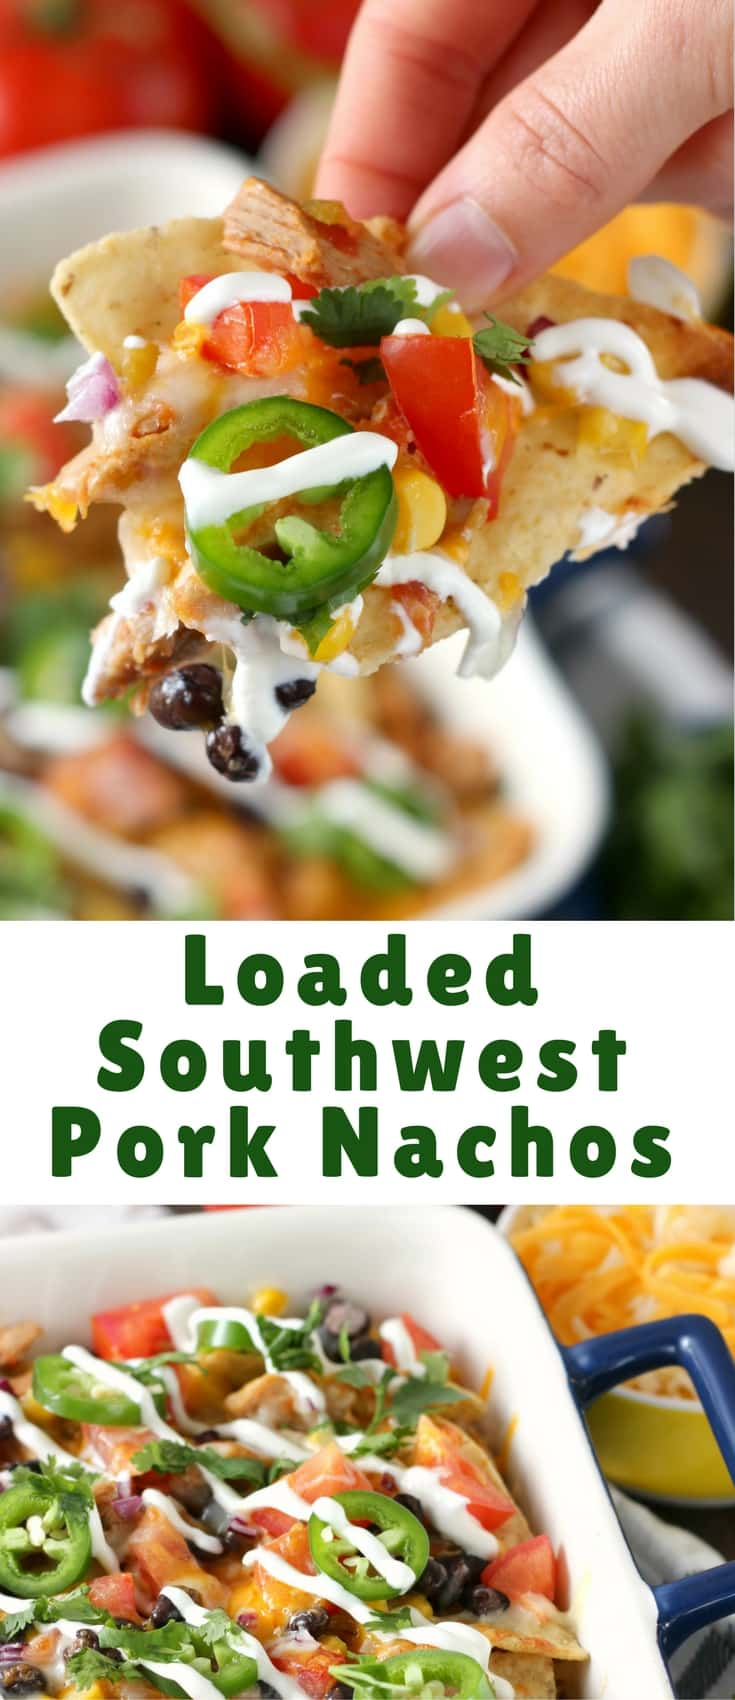 These Loaded Southwestern Pork Nachos are filled with tender, shredded pork, beans, corn, tomatoes, jalapeños, and, of course, lots of cheese! Serve these at your next game day party!